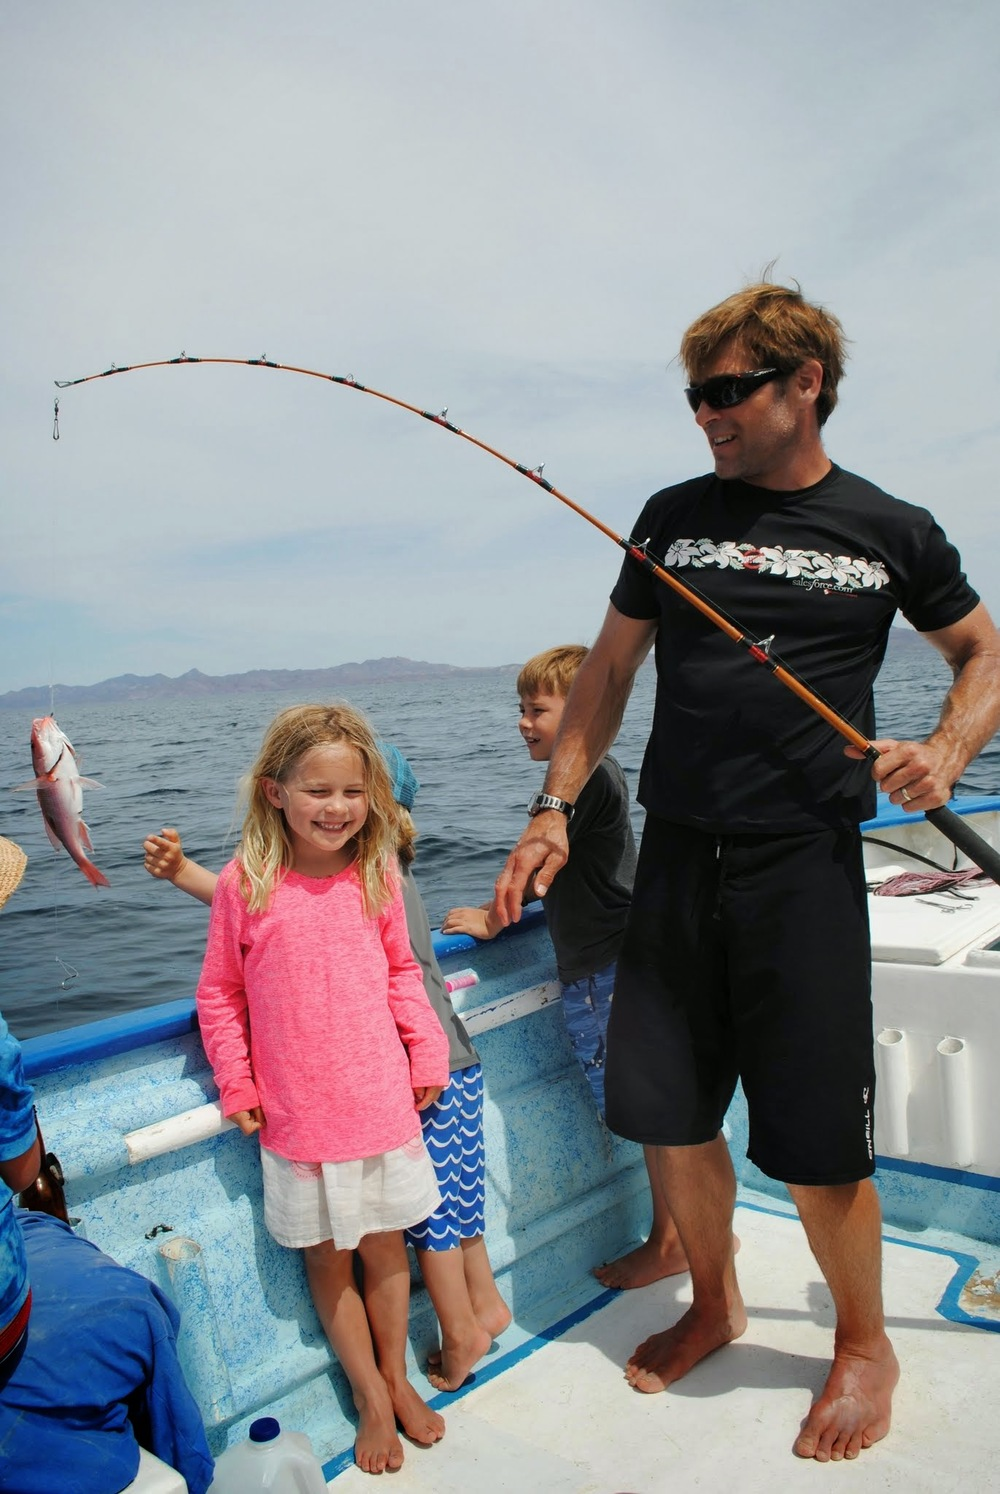 Some fun fishing in the Sea of Cortez.